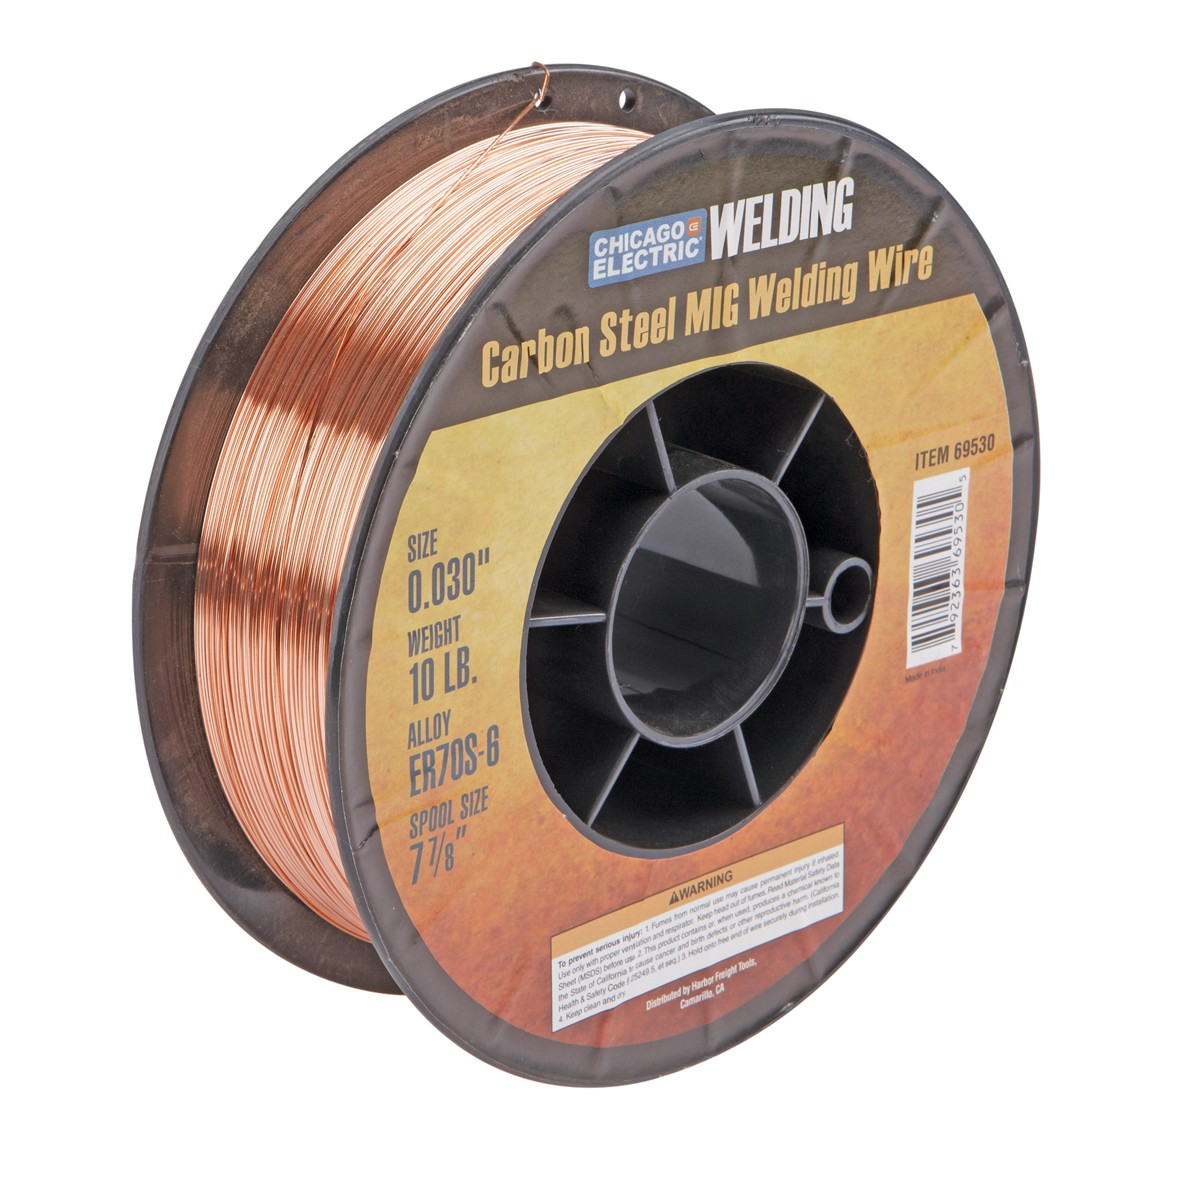 Welding Wire & Electrodes